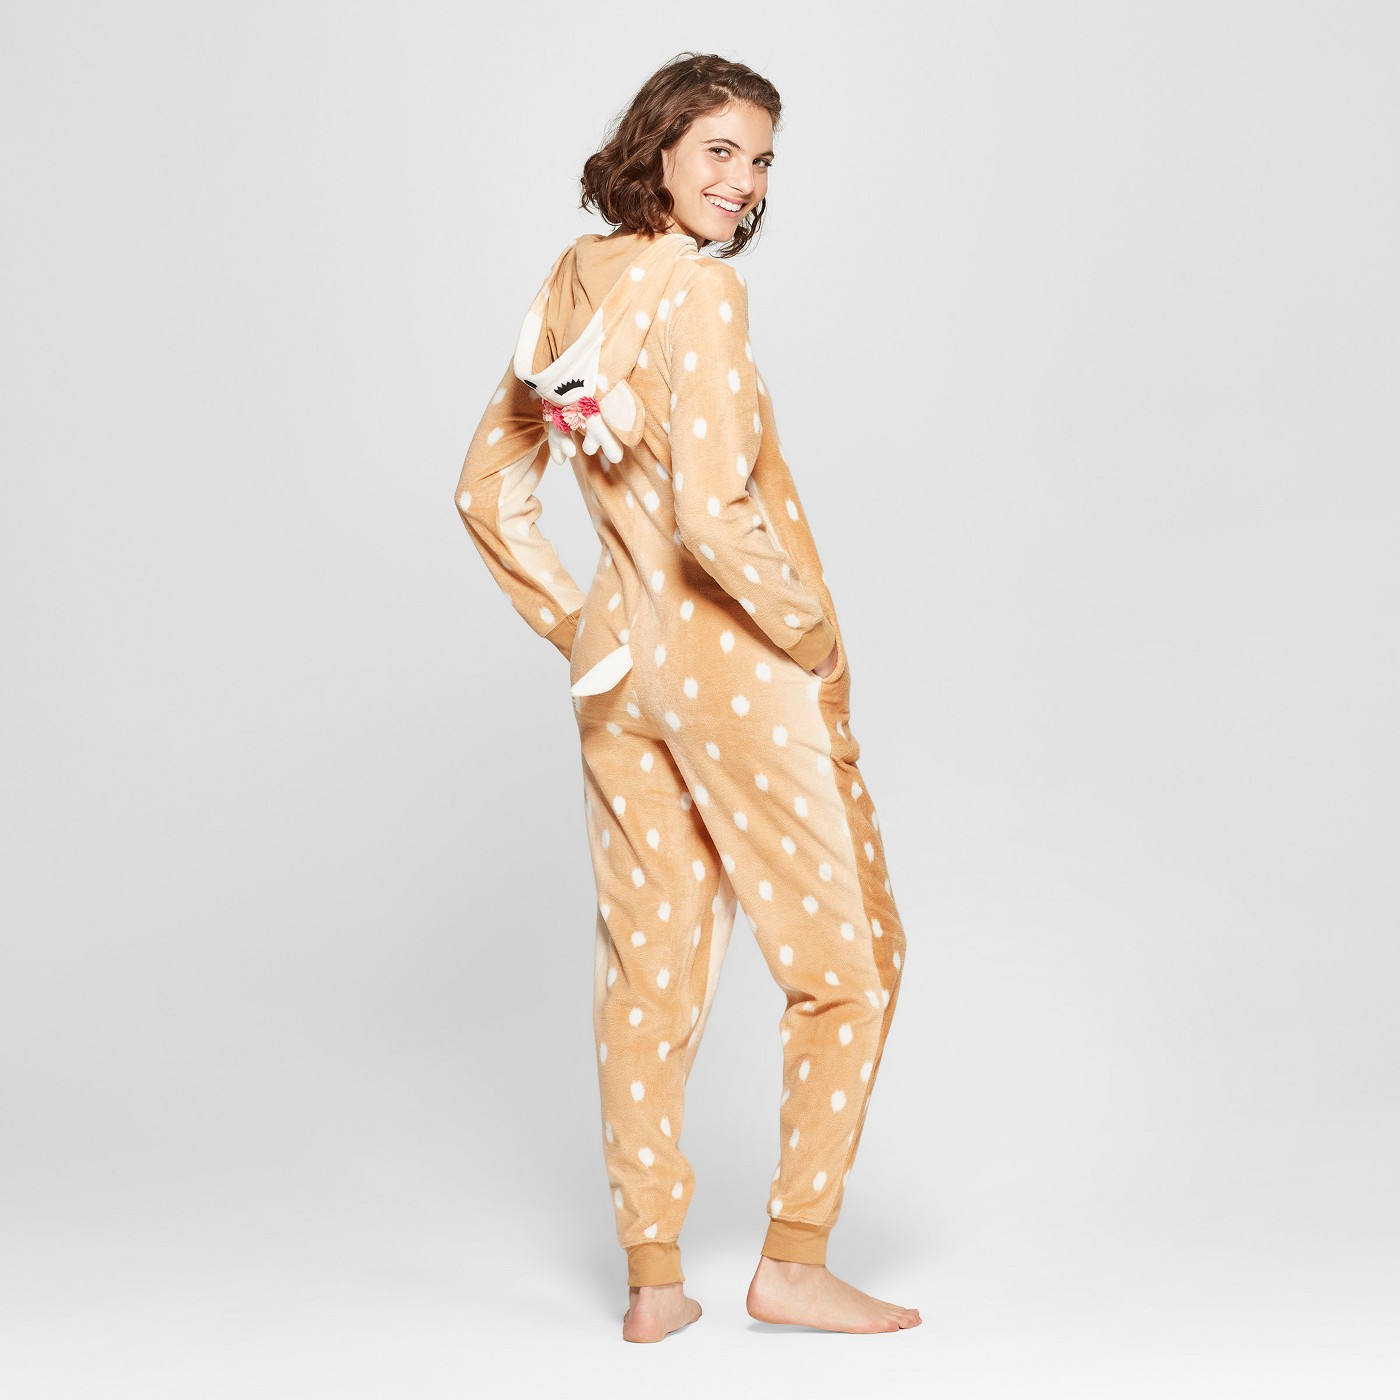 Family Christmas pajamas - love the fawn pajamas kellyelko.com #christmaspajamas #christmas #christmastraditions